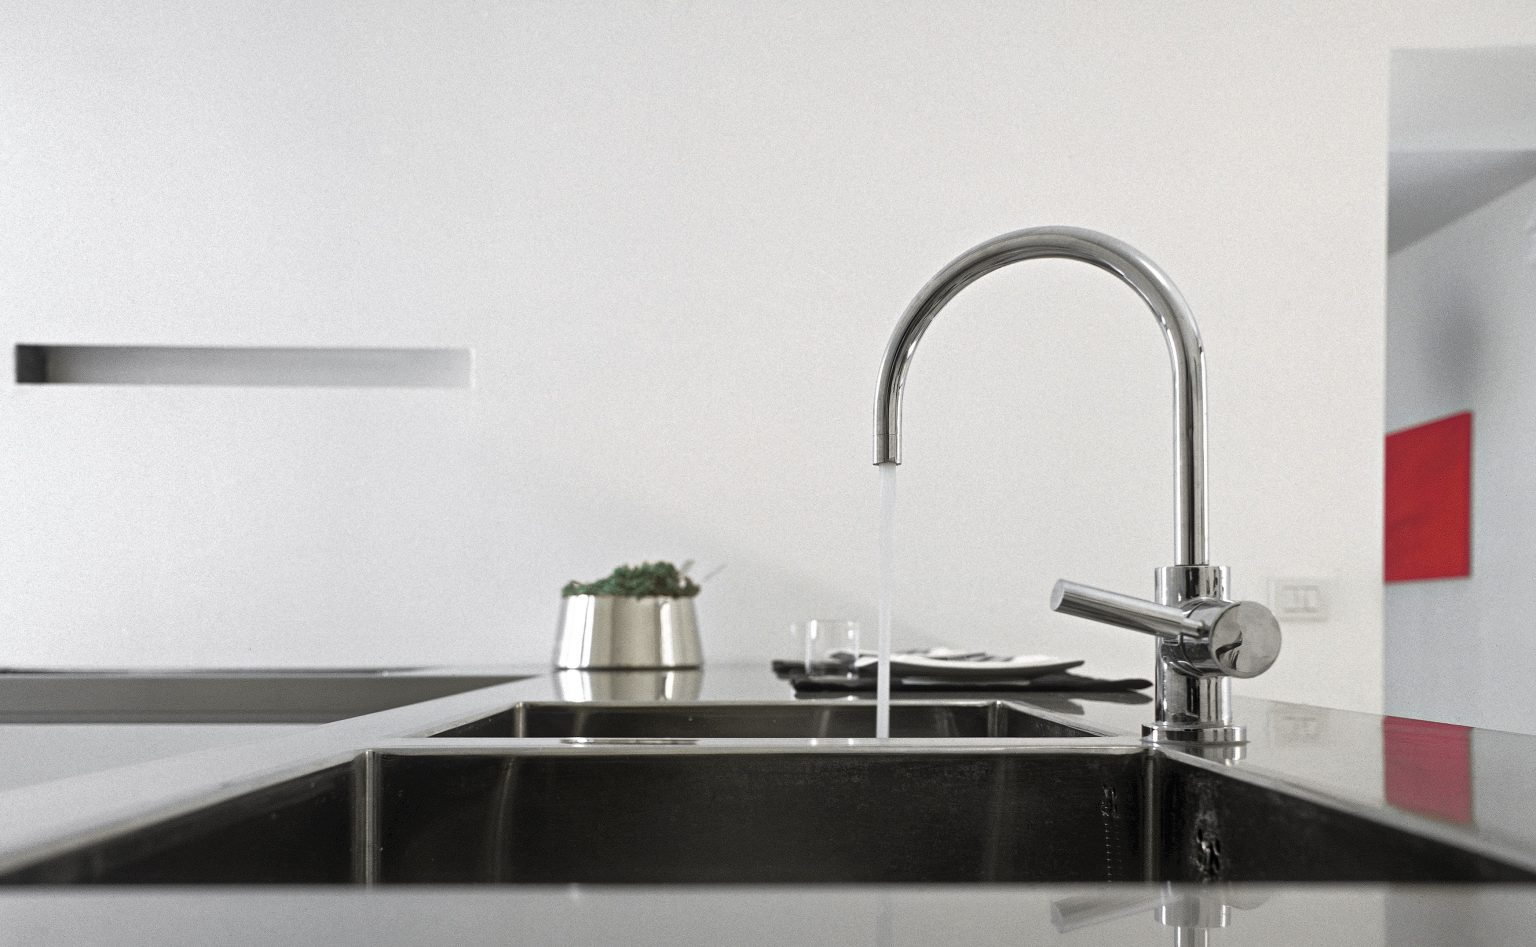 detail of steel faucet in a modern kitchen with steel worktop